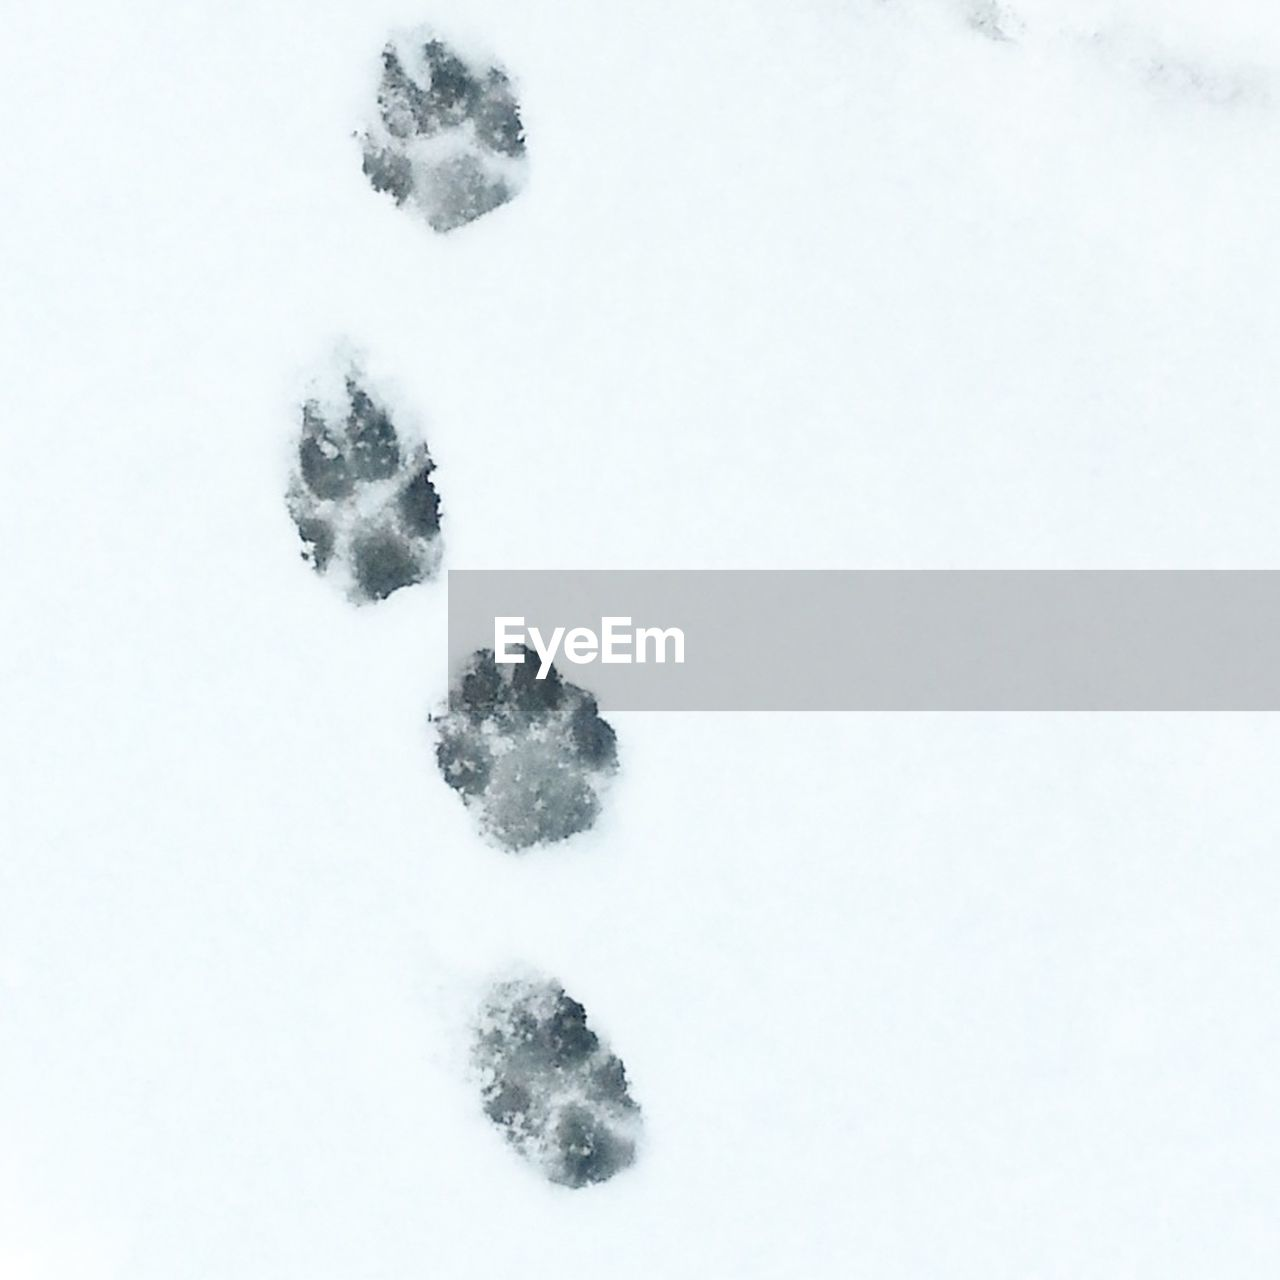 snow, winter, cold temperature, weather, nature, frozen, no people, cold, high angle view, outdoors, day, paw print, field, tranquility, white background, snowing, snowdrift, beauty in nature, animal themes